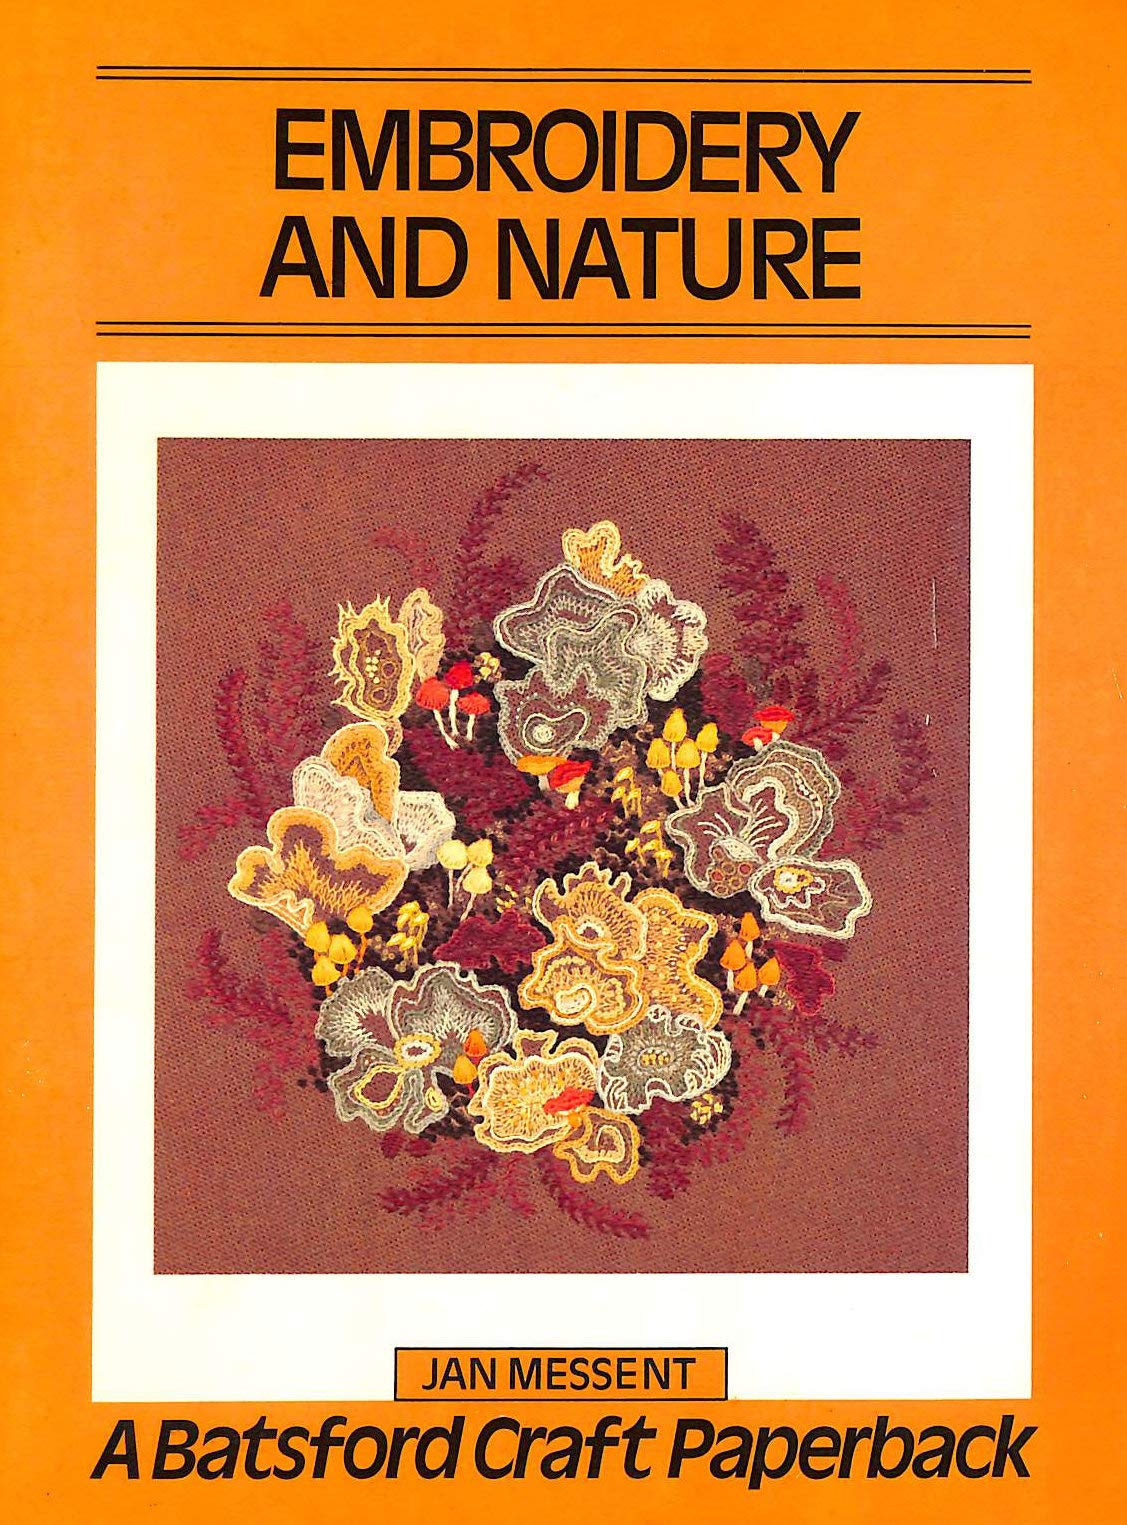 Embroidery and Nature (Craft Paperbacks): Amazon.co.uk: Jan Messent:  9780713418323: Books